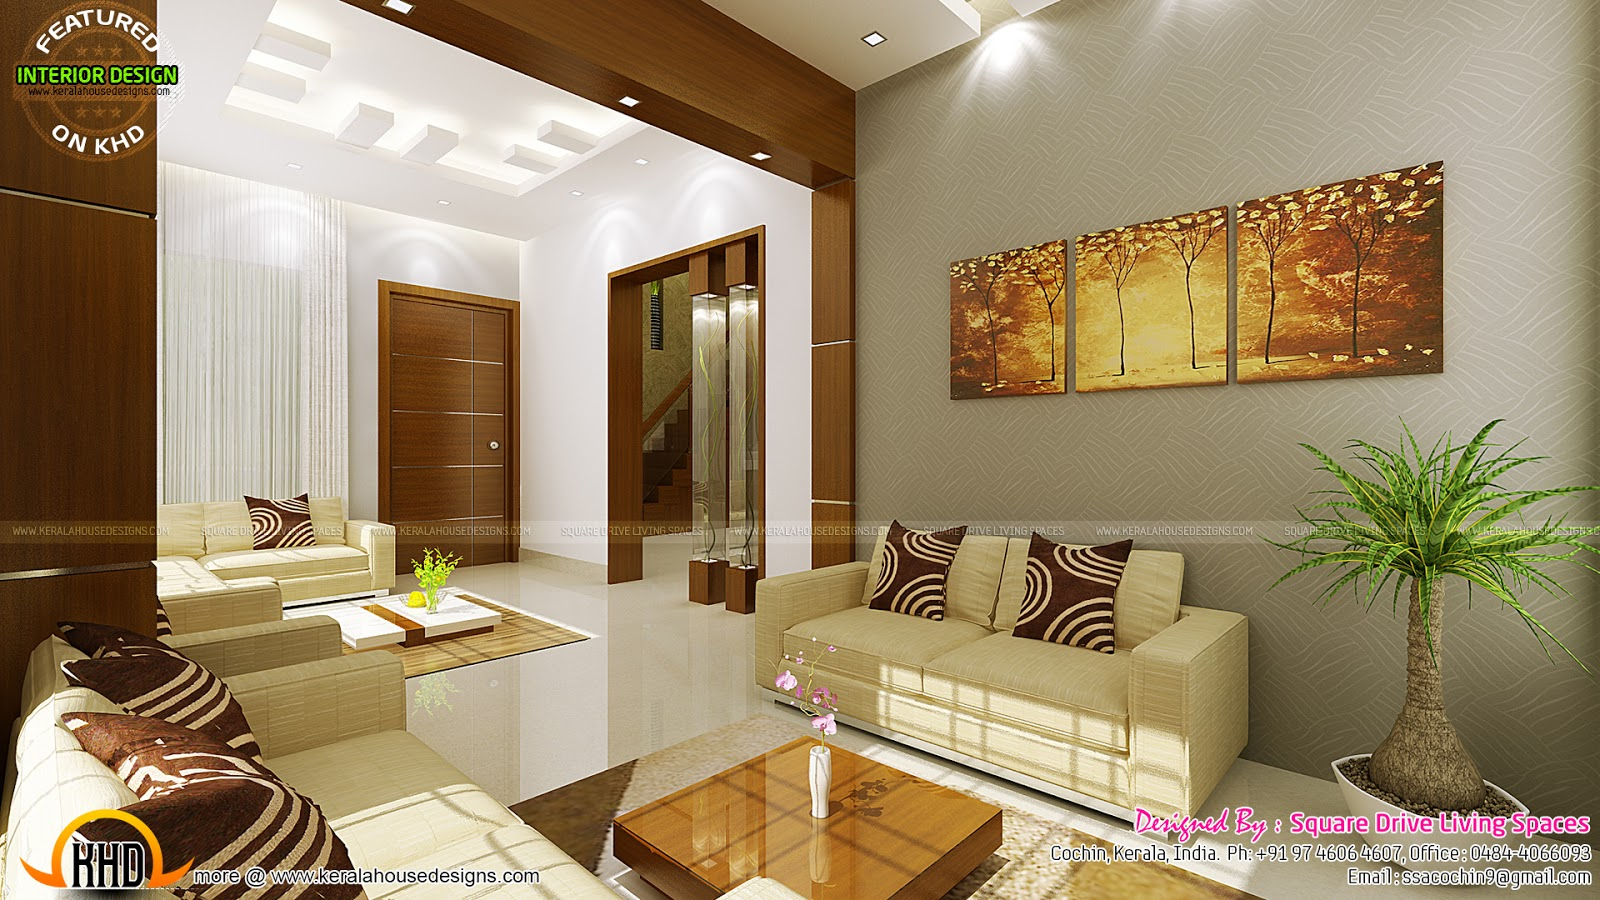 Contemporary kitchen dining and living room kerala home for Home interior design photo gallery